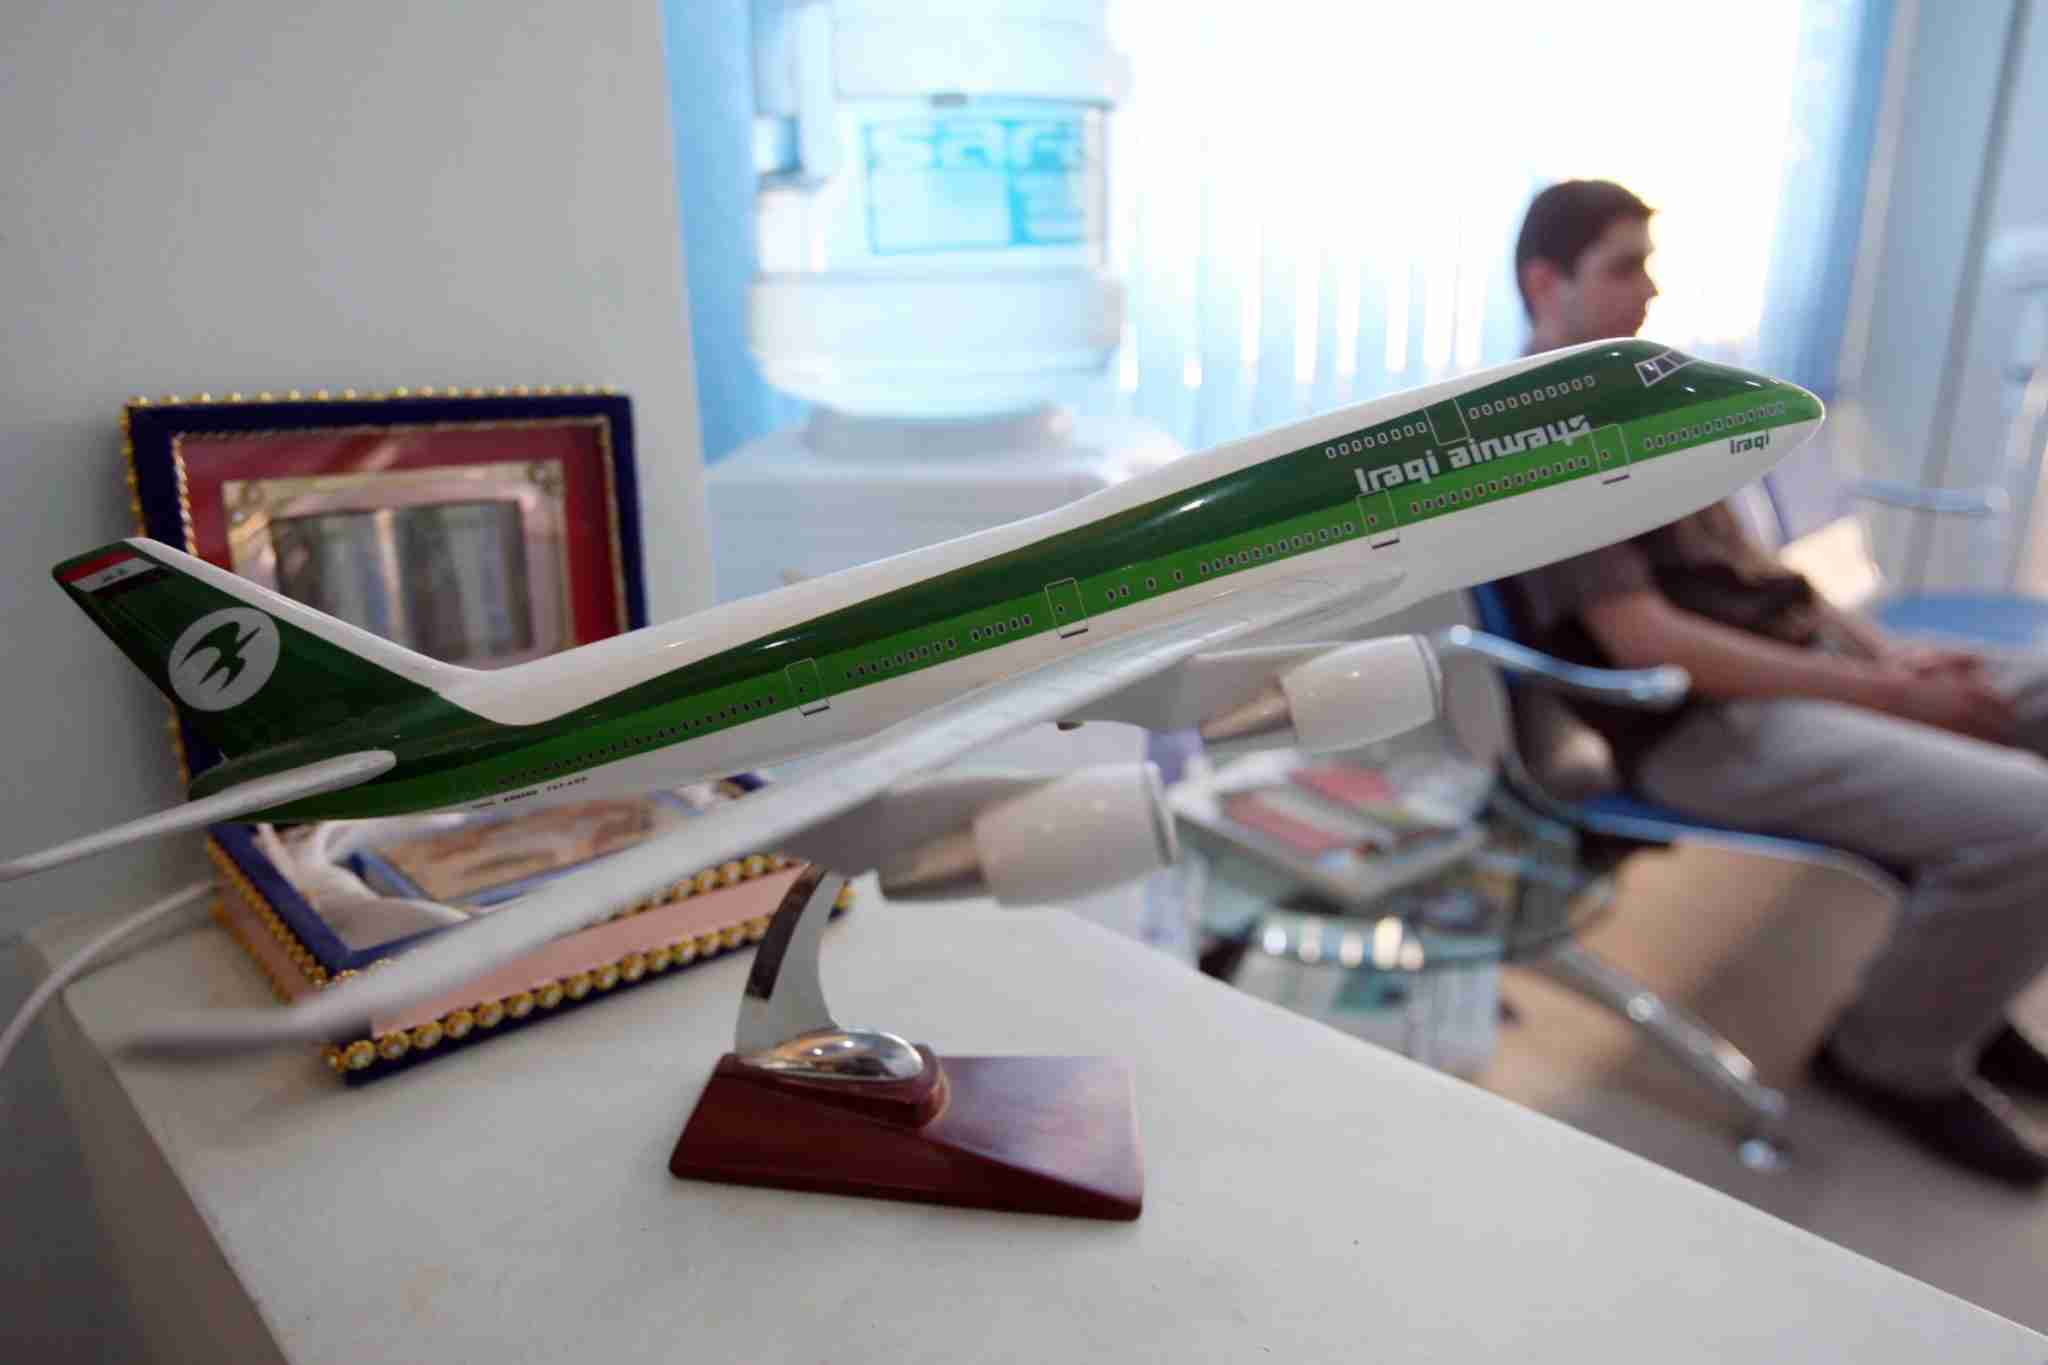 A model plane sits on a desk as customers wait at an Iraqi Airways office in Baghdad on May 26, 2010. Baghdad has decided to close down state-owned Iraqi Airways in the face of a decades-old financial dispute with neighbouring Kuwait that prompted the seizure of one of its aircraft last month, the transport ministry has announced. AFP PHOTO/ALI AL-SAADI (Photo credit should read ALI AL-SAADI/AFP via Getty Images)